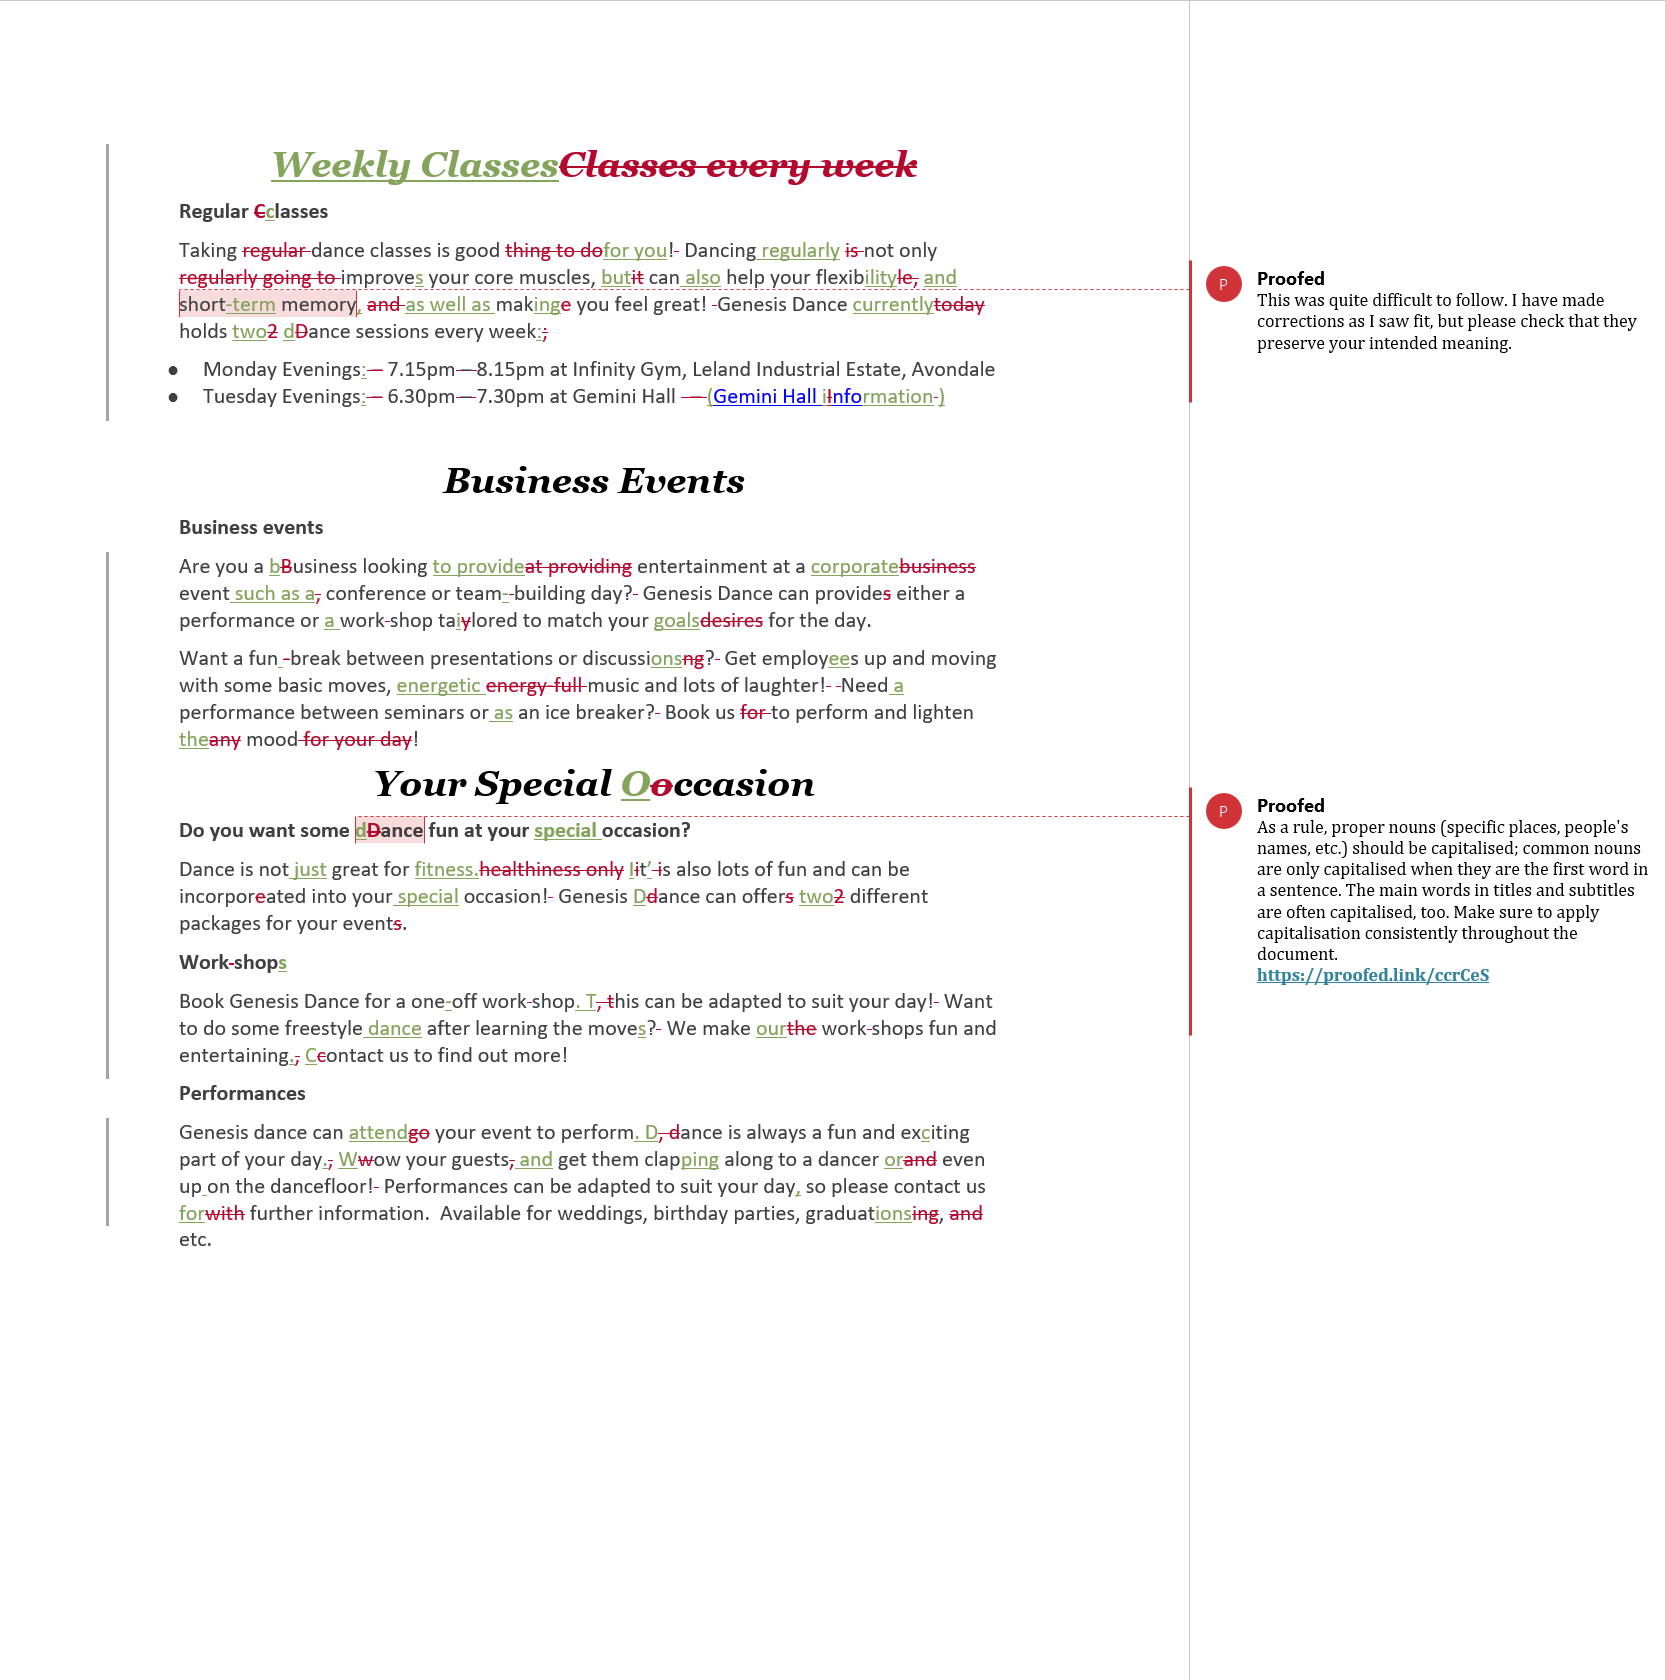 Website Proofreading Example (Before Editing)